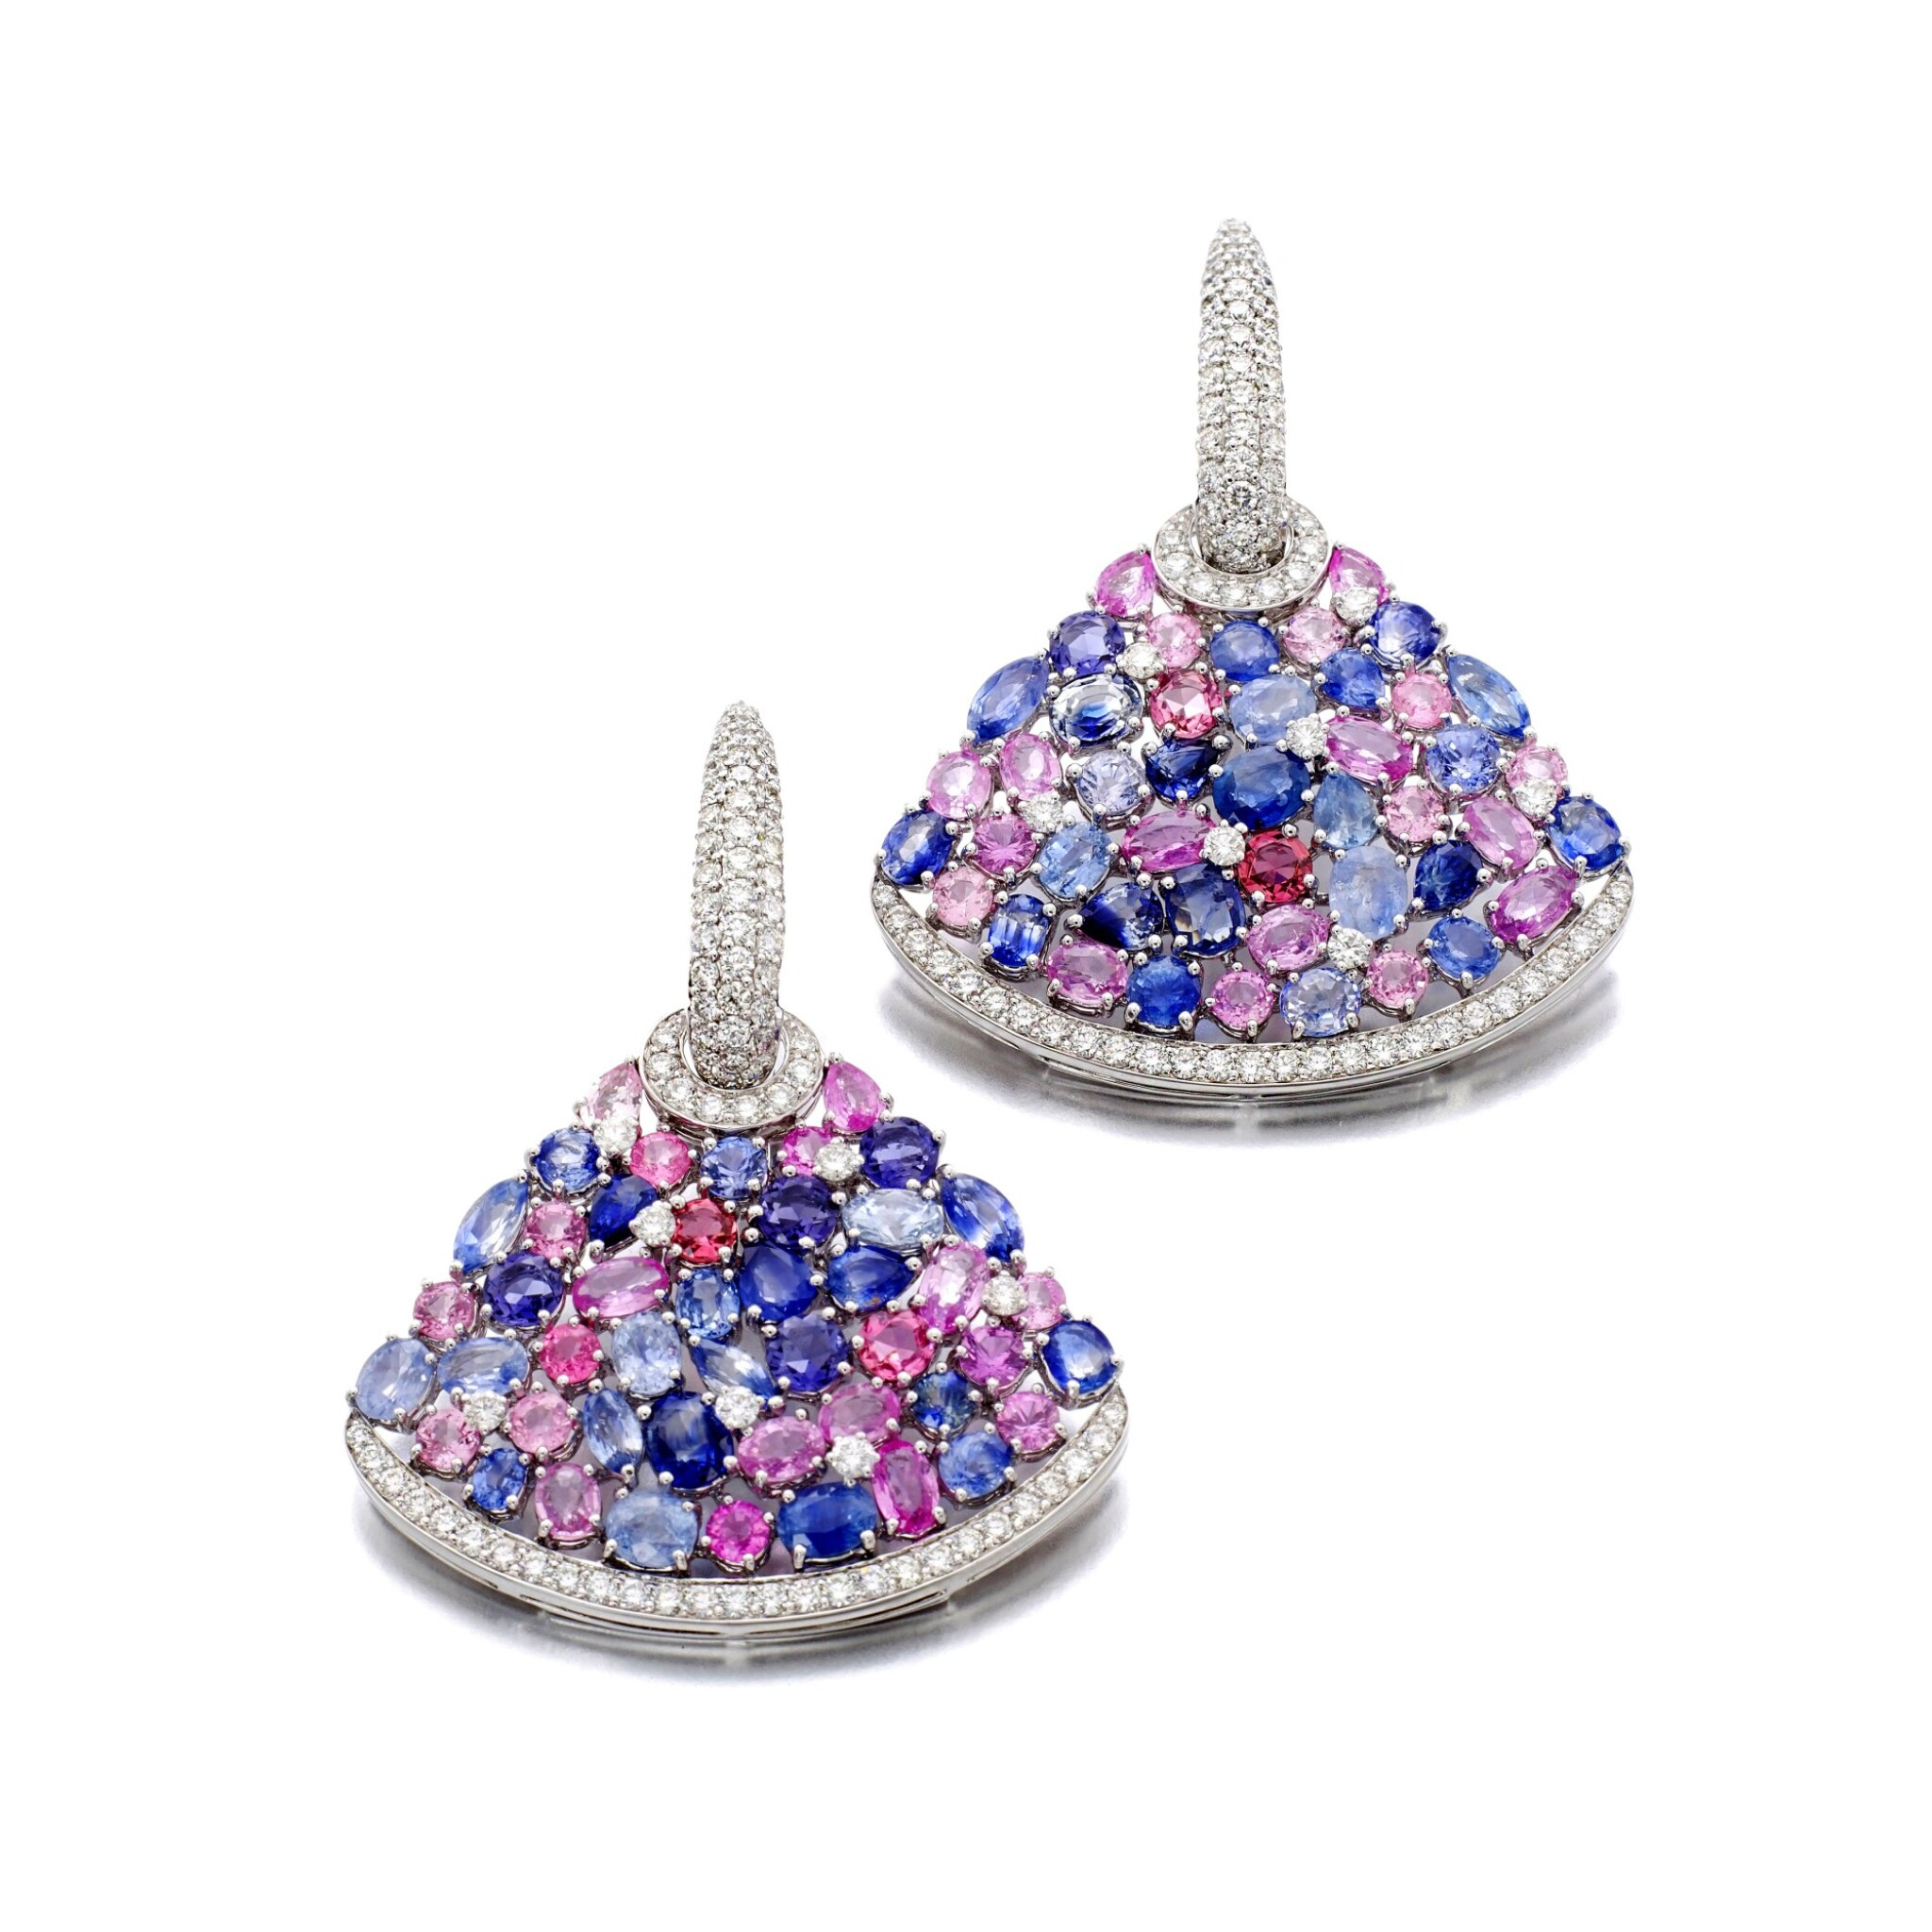 View full screen - View 1 of Lot 44. MICHELE DELLA VALLE | GEM SET AND DIAMOND EARRINGS.